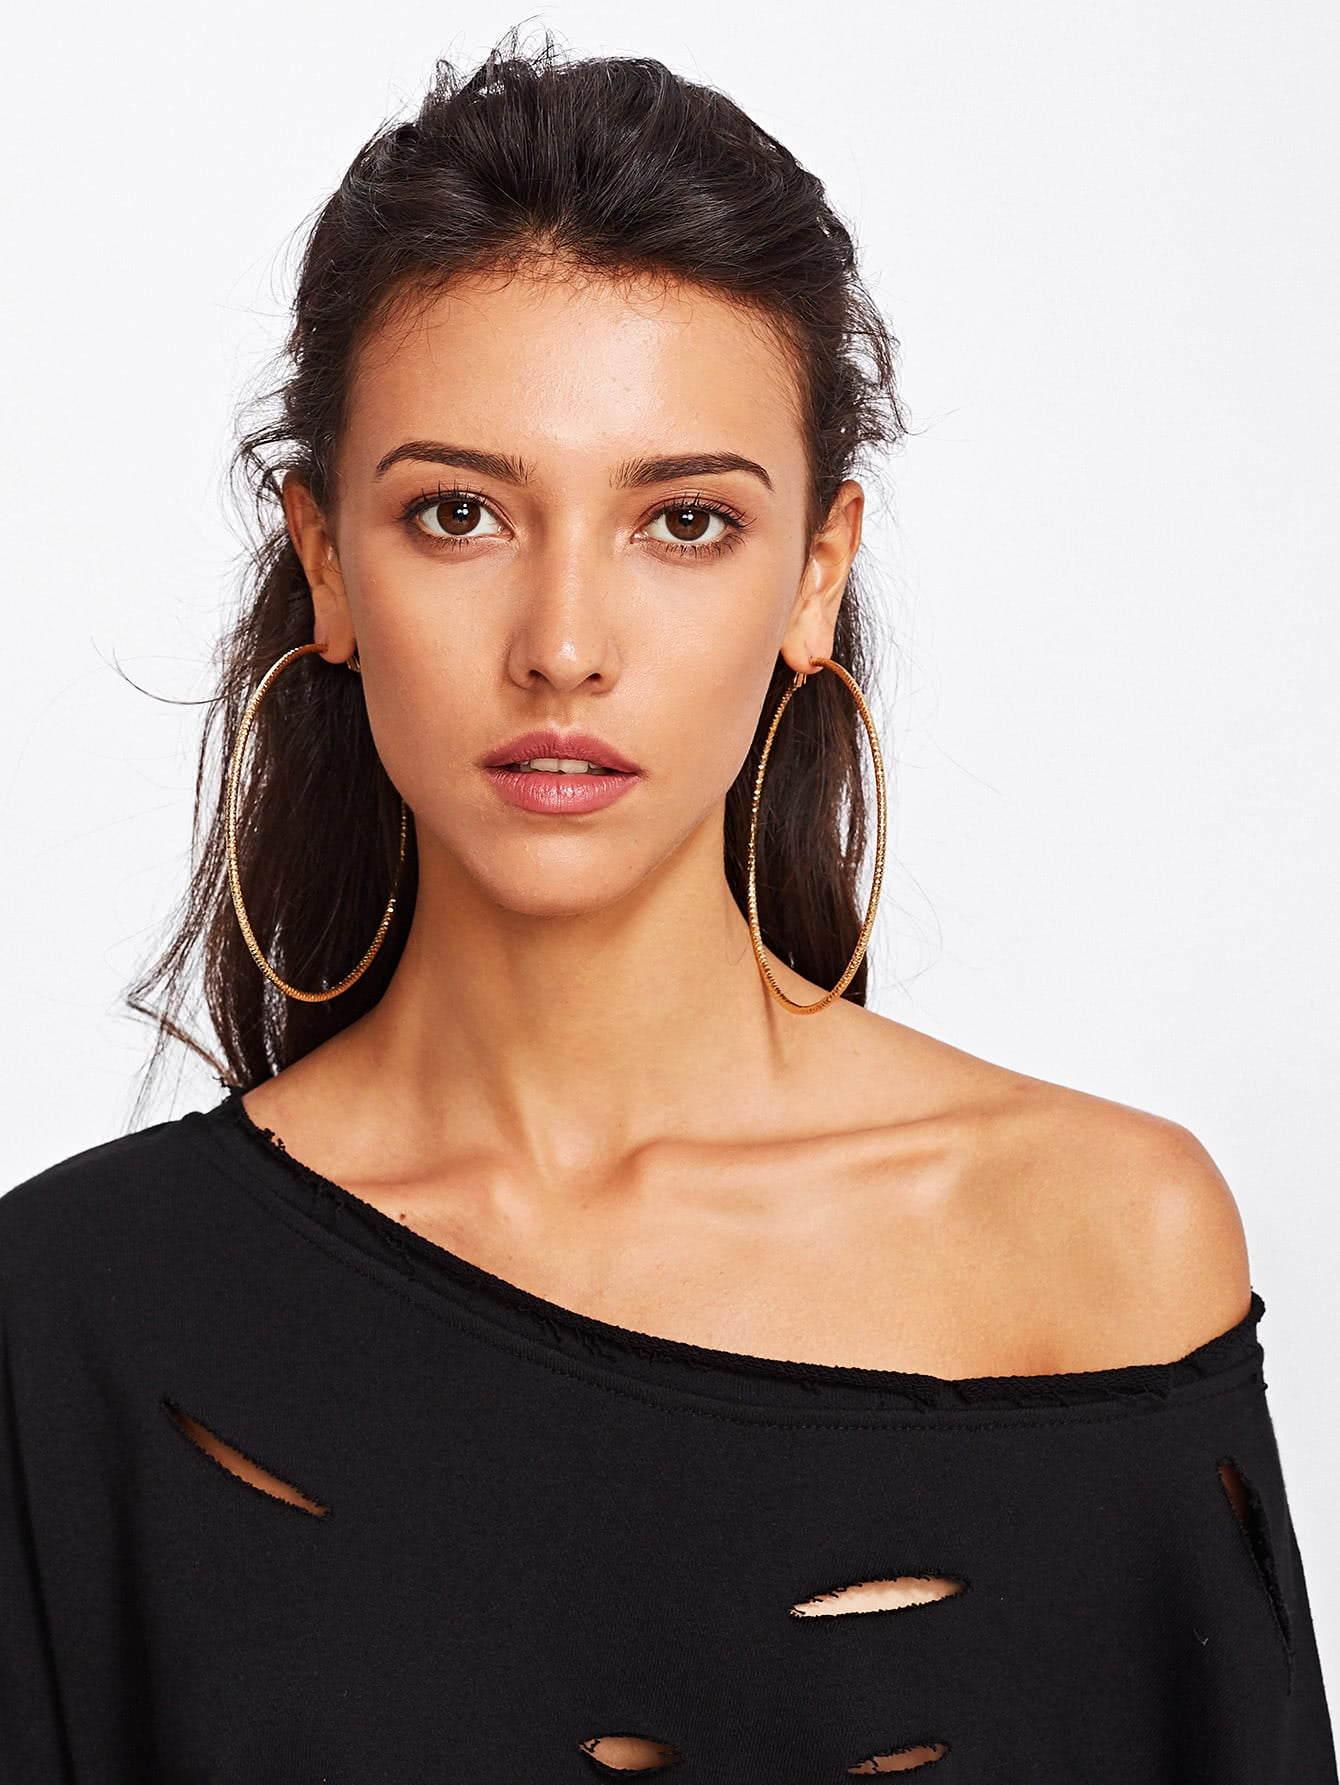 Oversized Hoop Earrings EmmaCloth-Women Fast Fashion Online